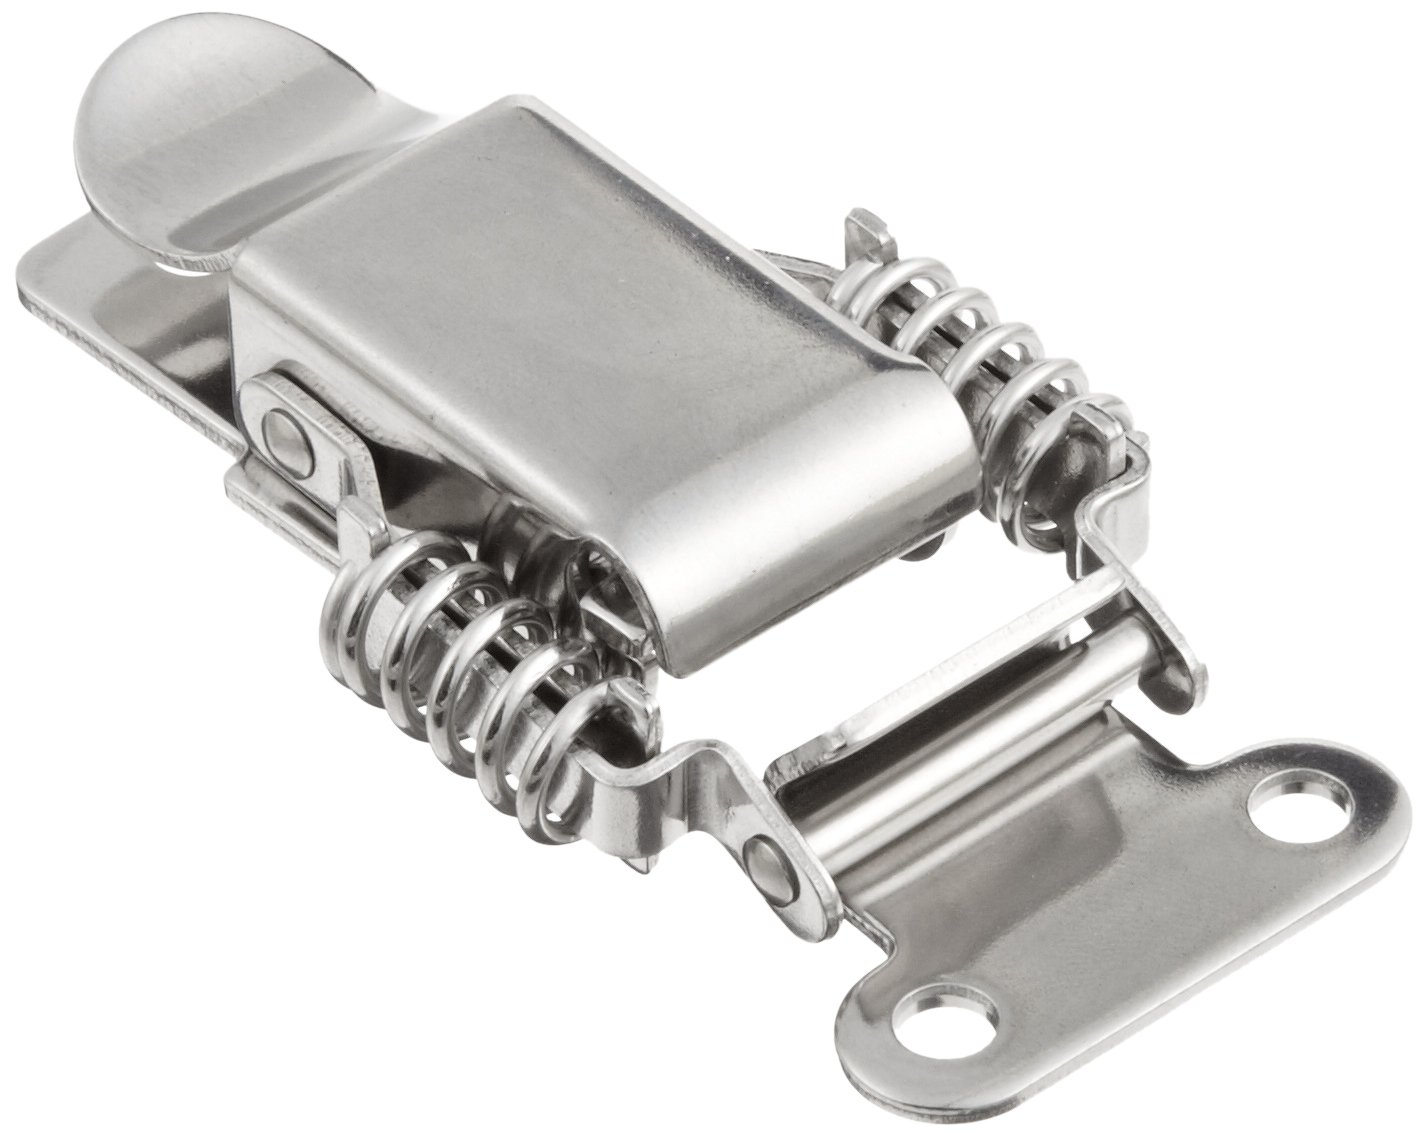 Stainless Steel 304 Spring Loaded Draw Latch, Polished Finish, Non Locking, 3 21/64'' Length (Pack of 1)